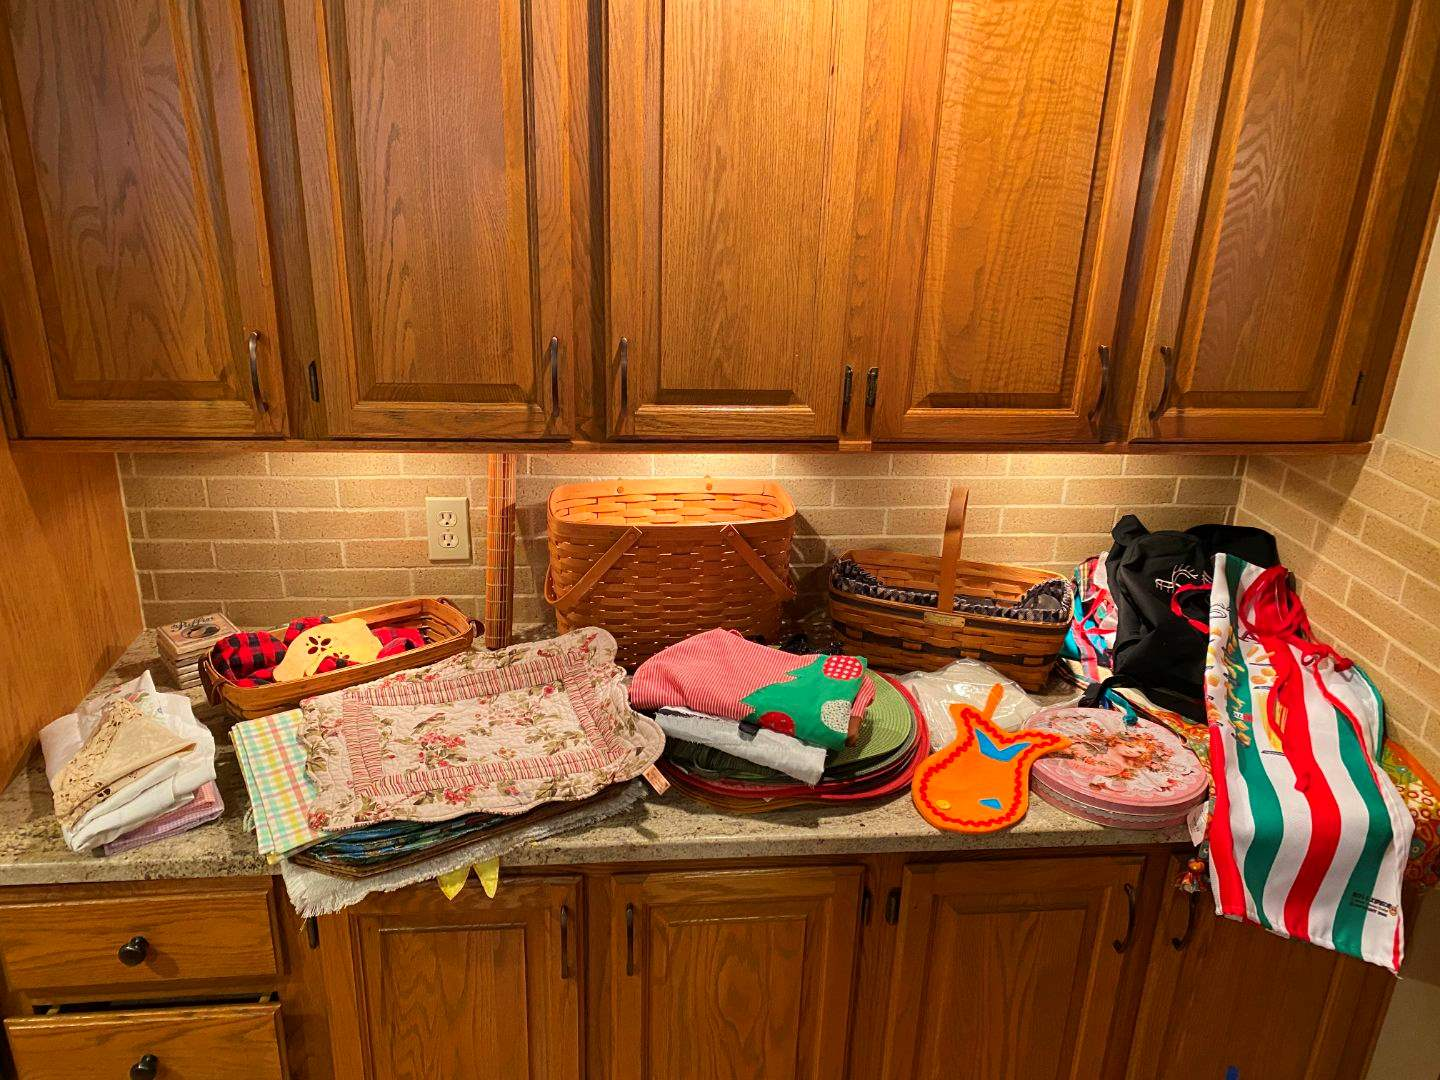 Lot # 77 - Selection of Placemats, Aprons, & Wood Baskets (main image)